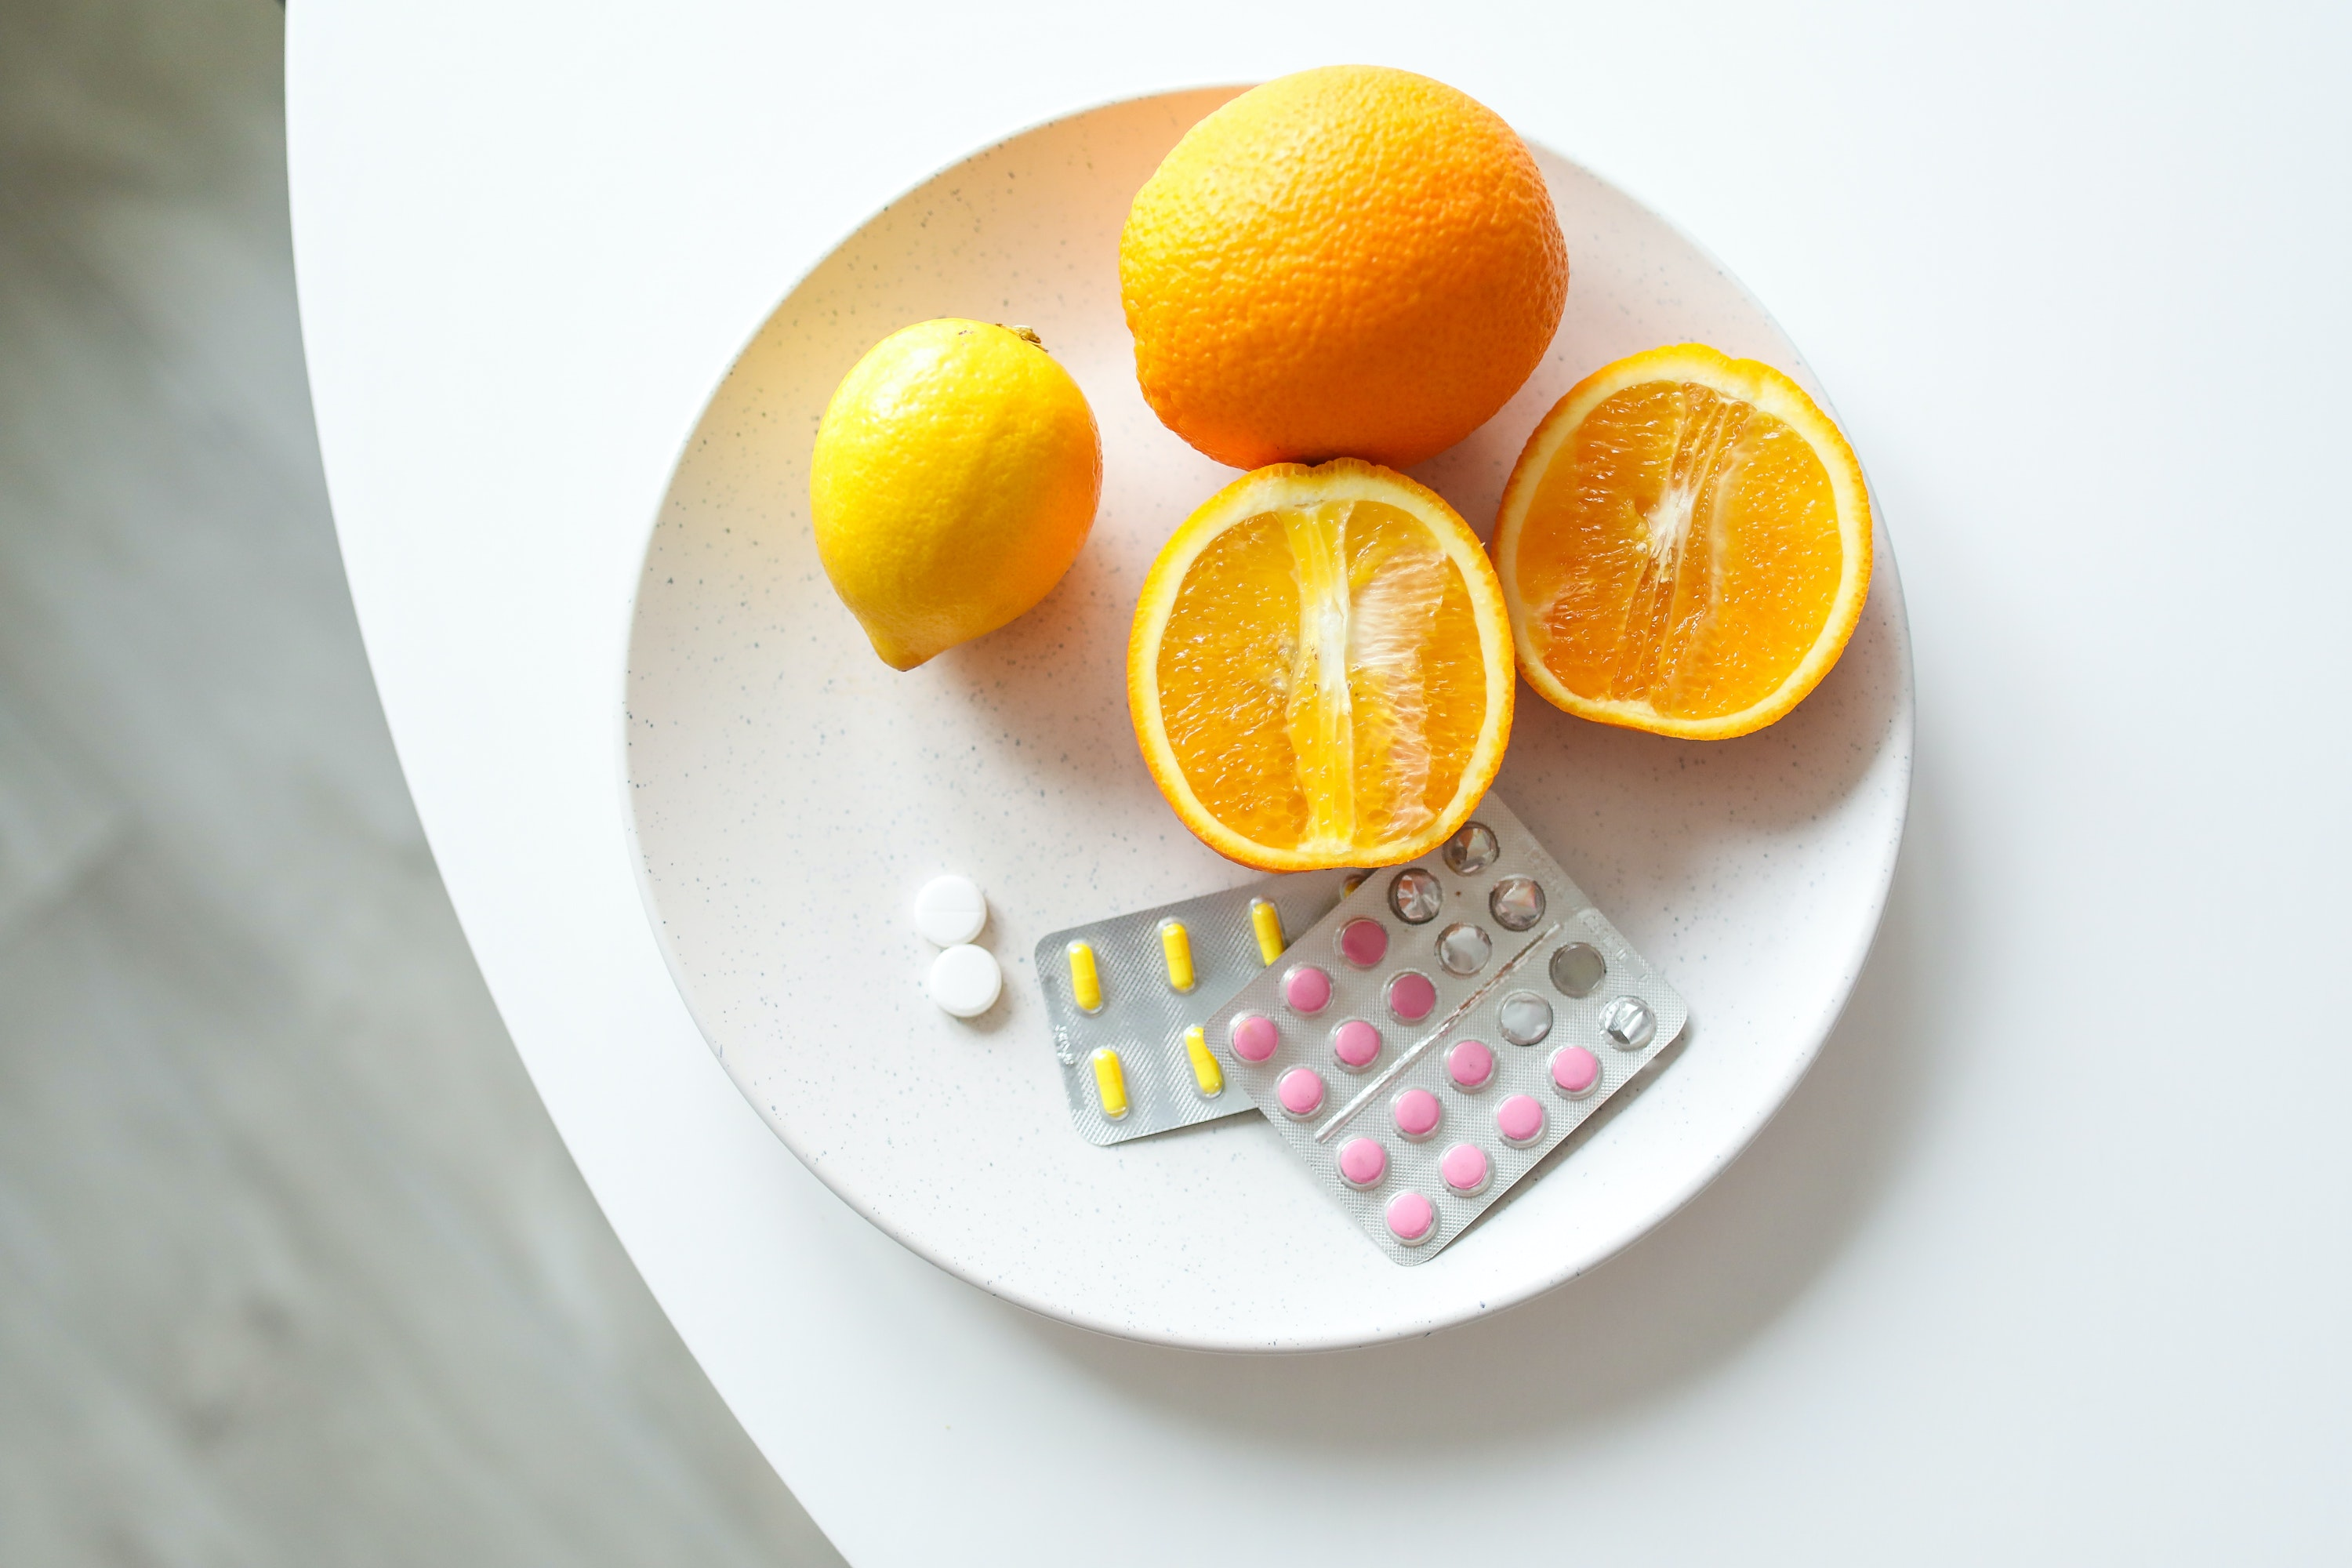 orange and medicines in a white plate for borderline personality disorder